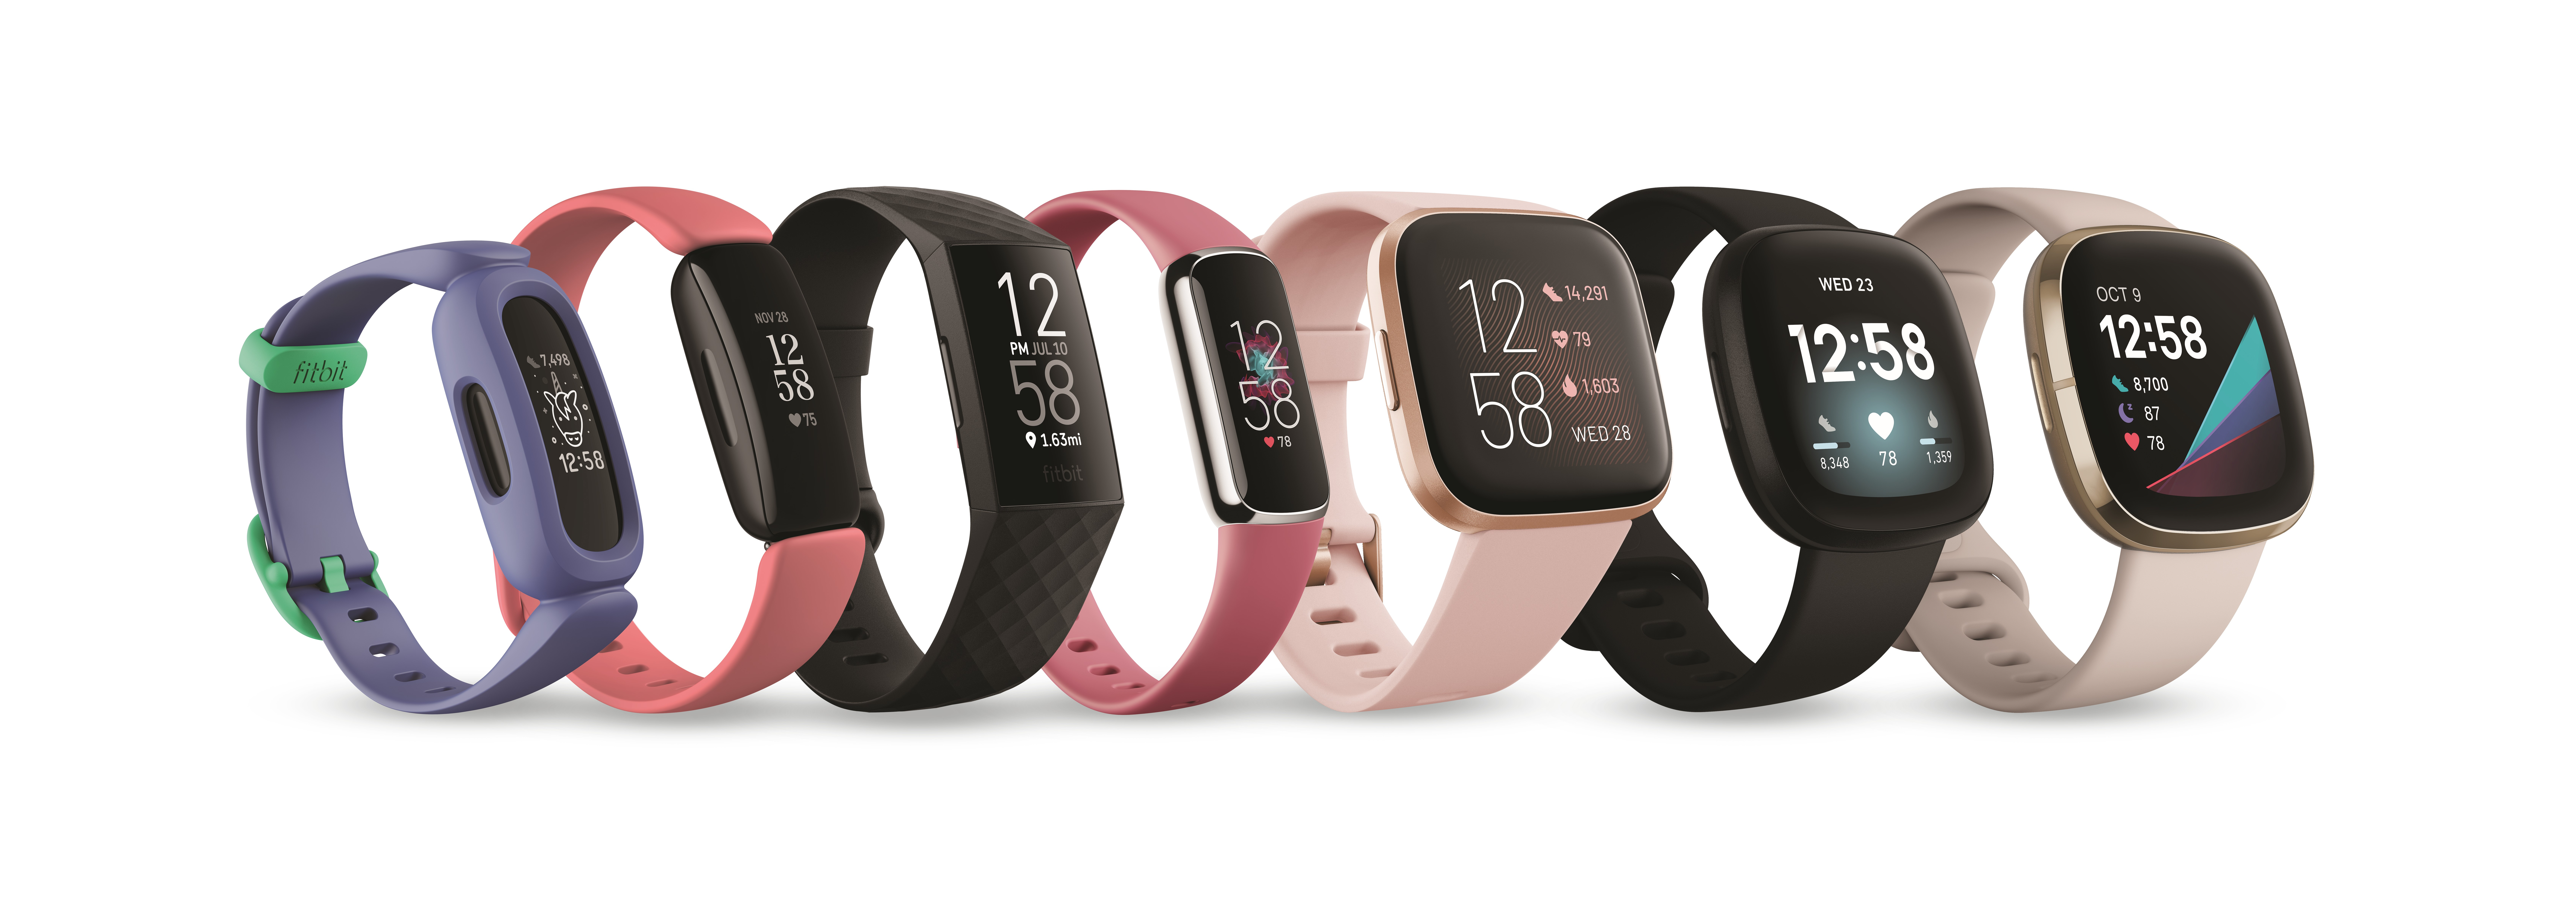 <p>Render of full 2021 Q2 Fitbit product family.</p>